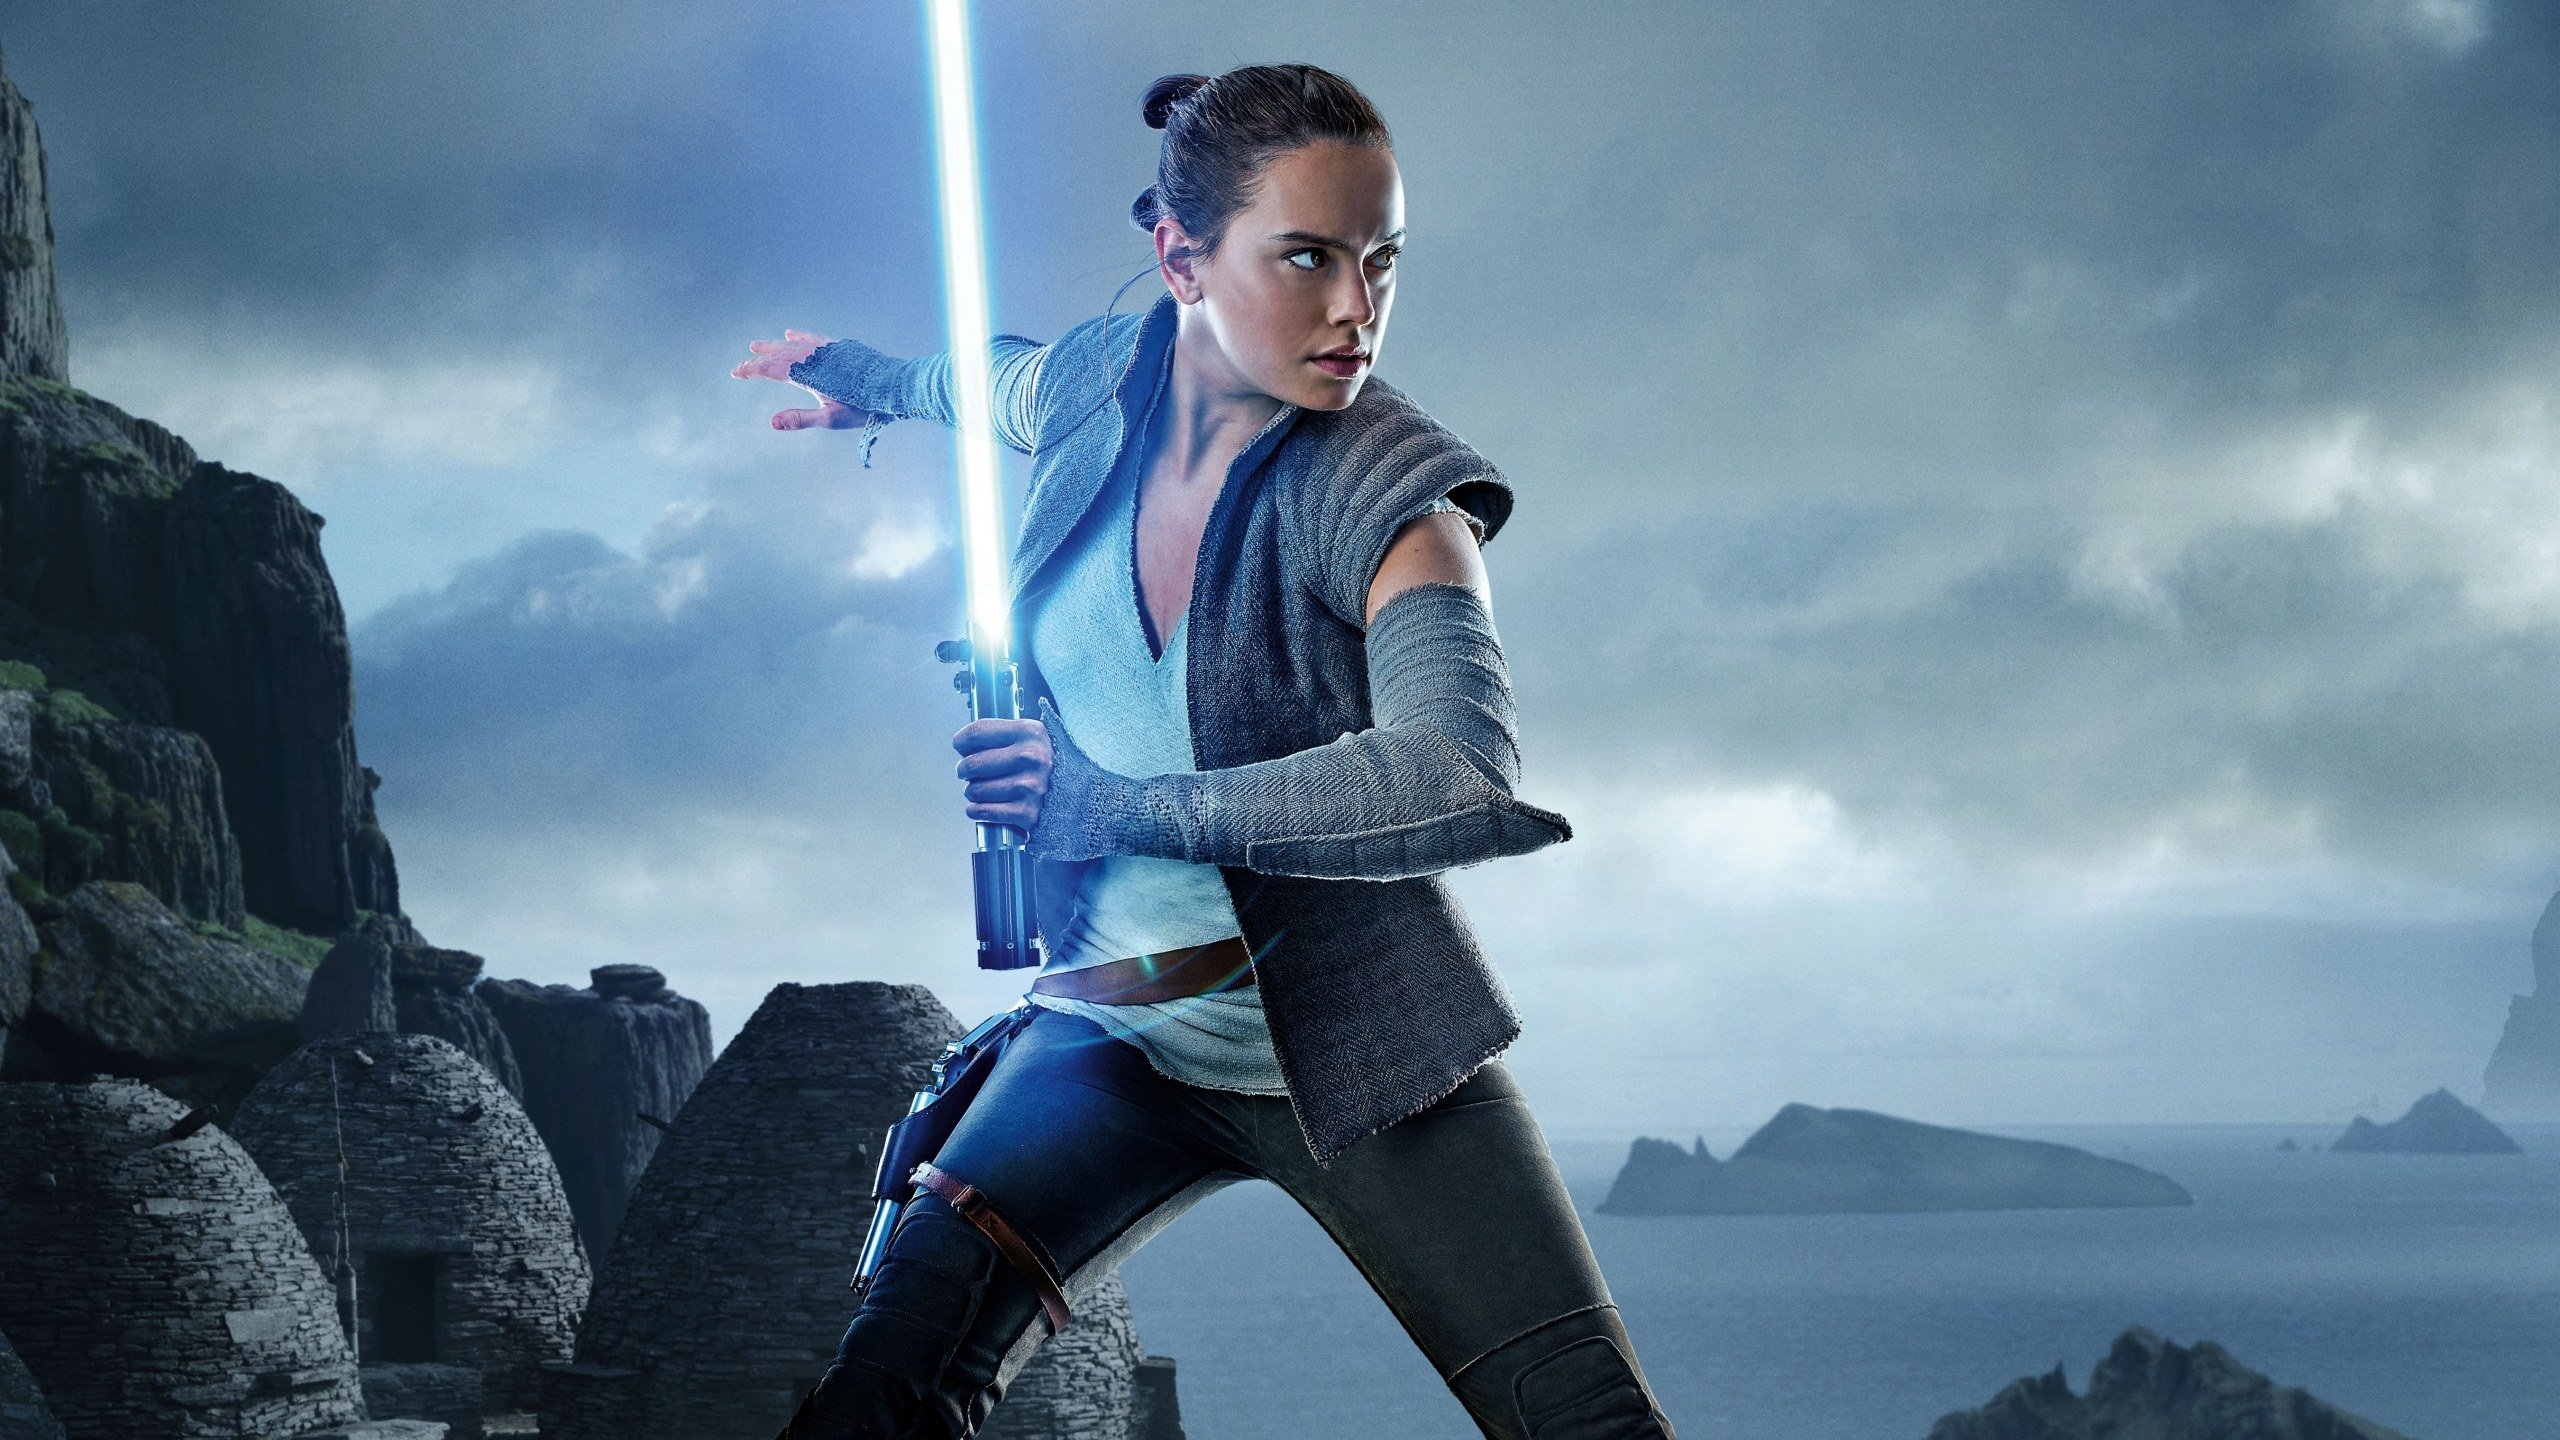 Jedi 4k Wallpapers For Your Desktop Or Mobile Screen Free And Easy